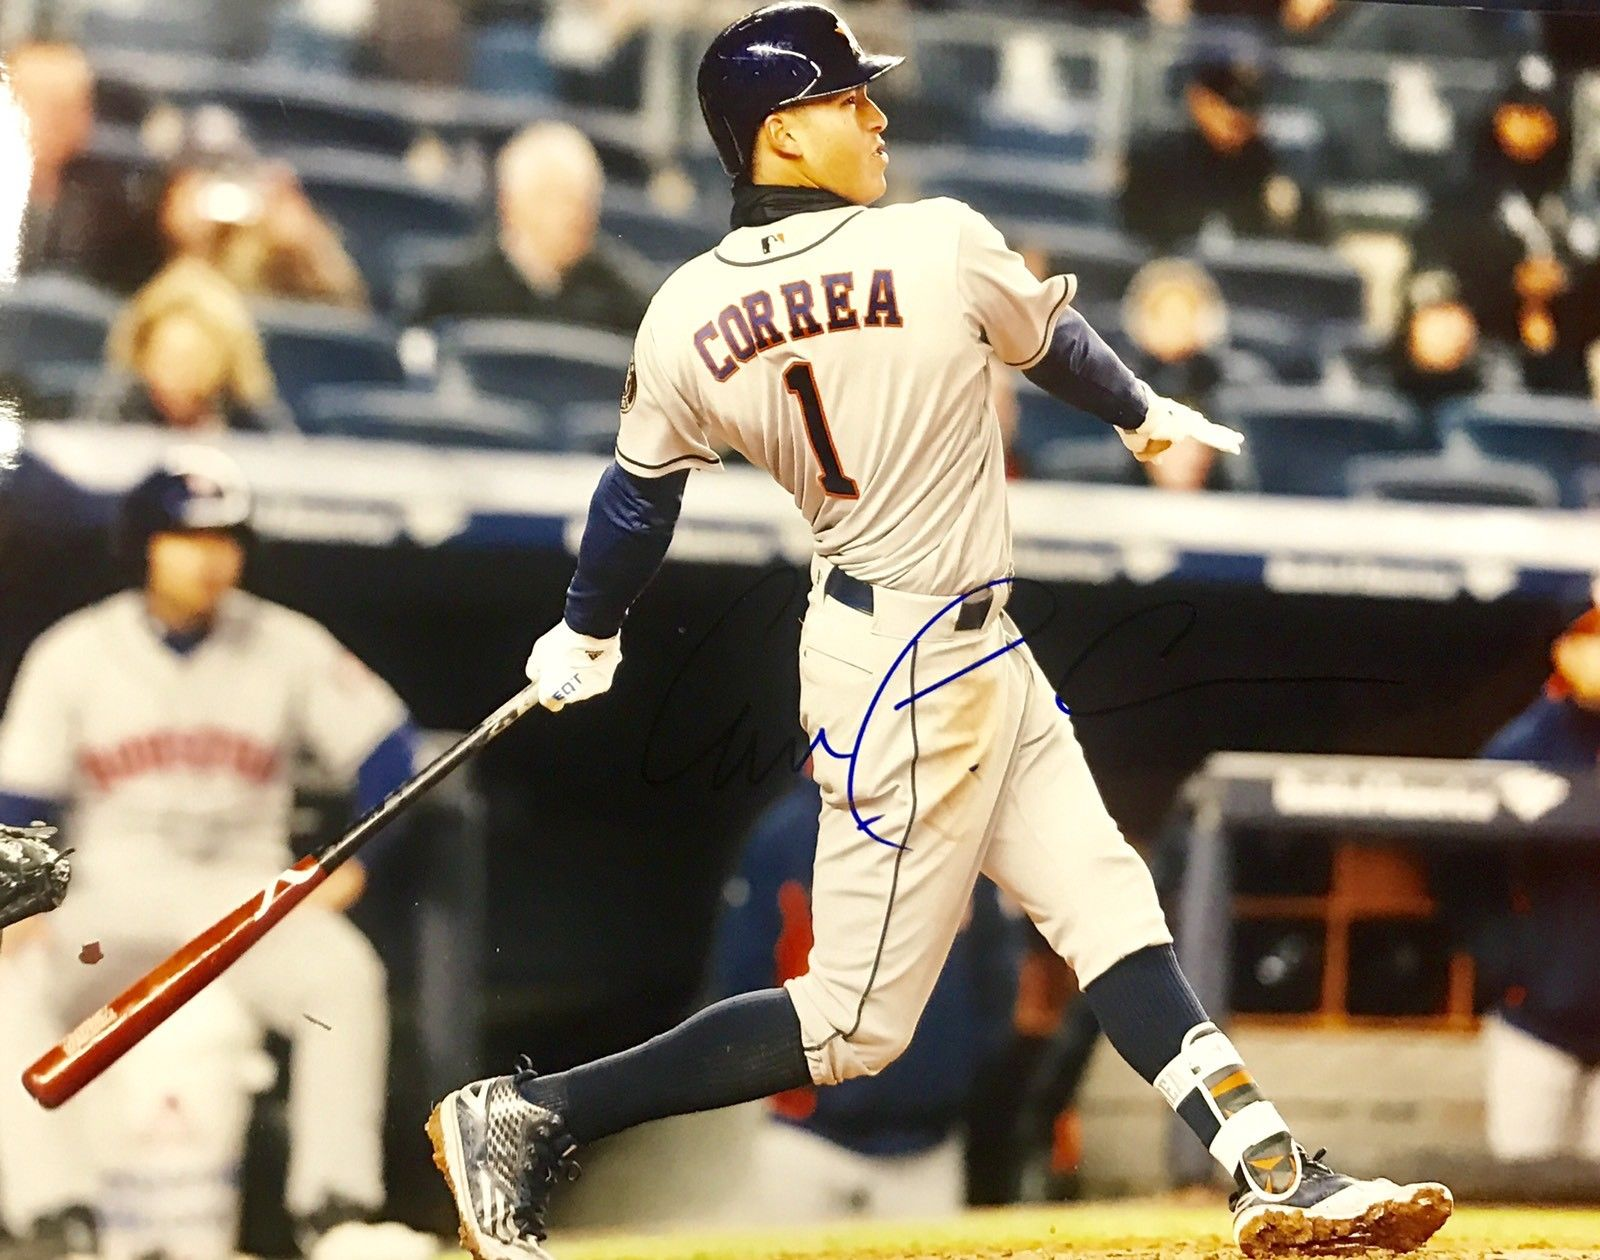 Carlos Correa Authentic Signed 11x14 Photo - HOUSTON ASTROS WS CHAMP ROY - Top Notch Signatures LLC